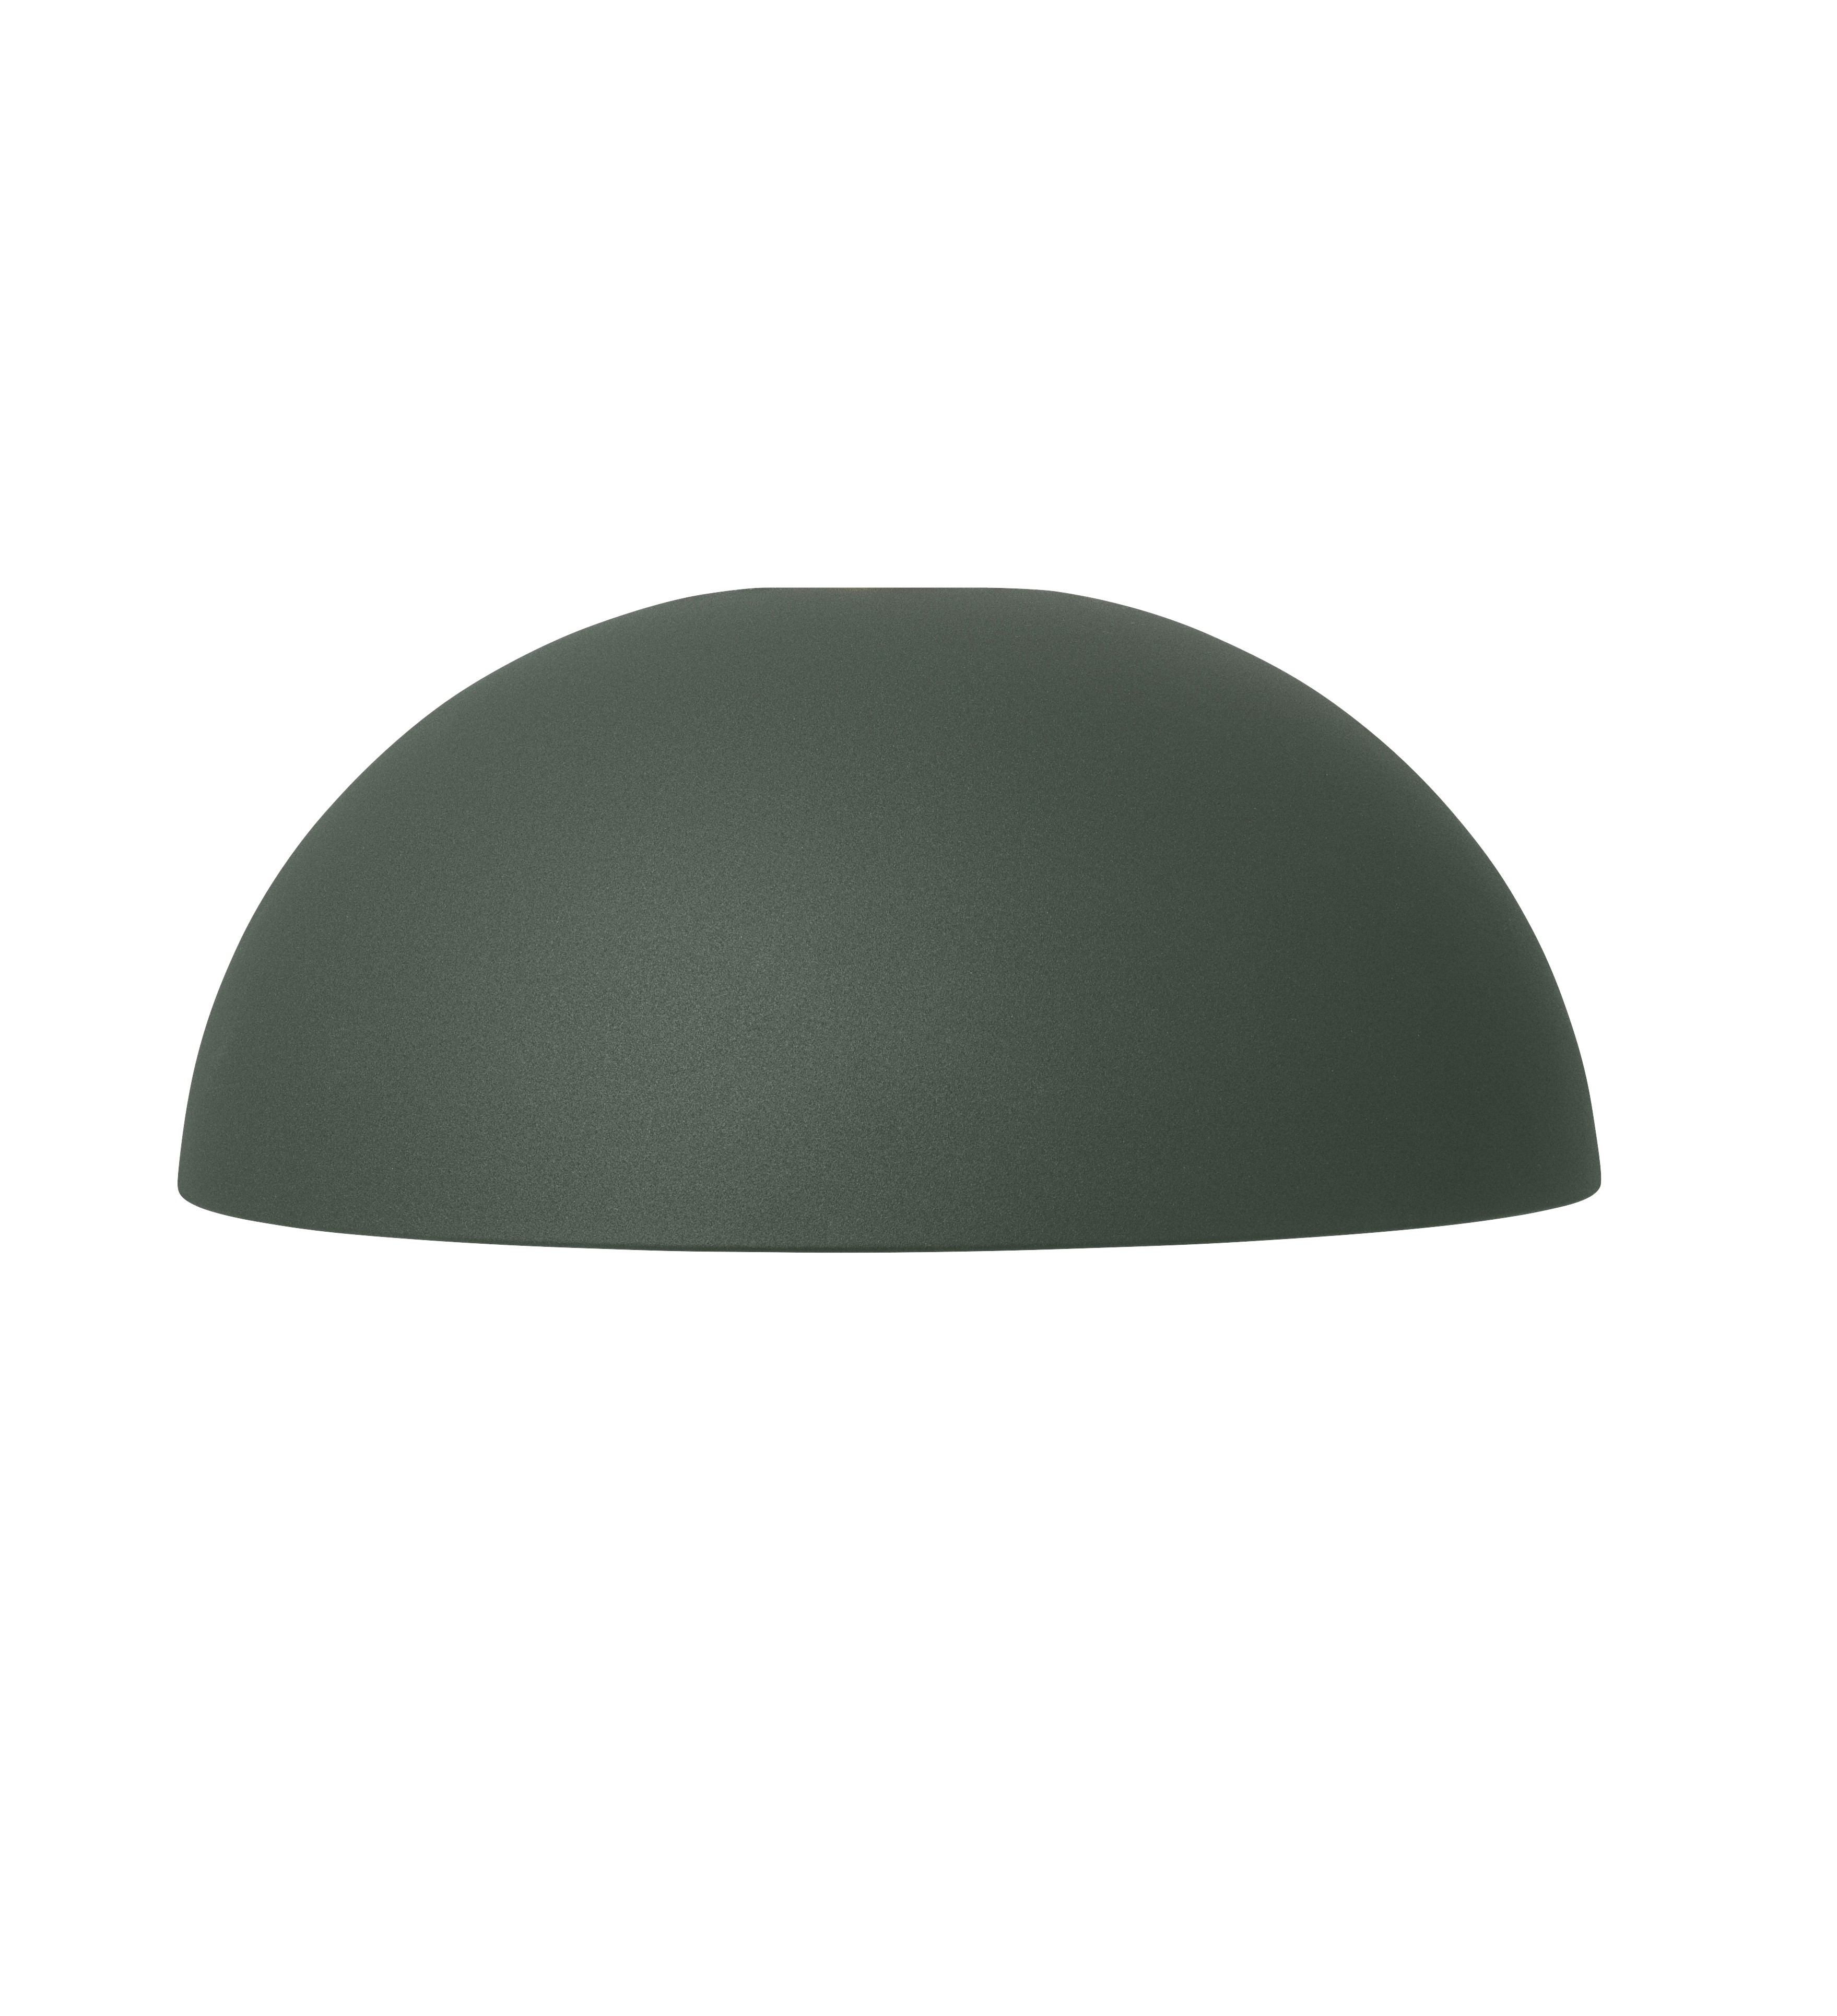 abat jour dome collect collection de ferm living dark green. Black Bedroom Furniture Sets. Home Design Ideas